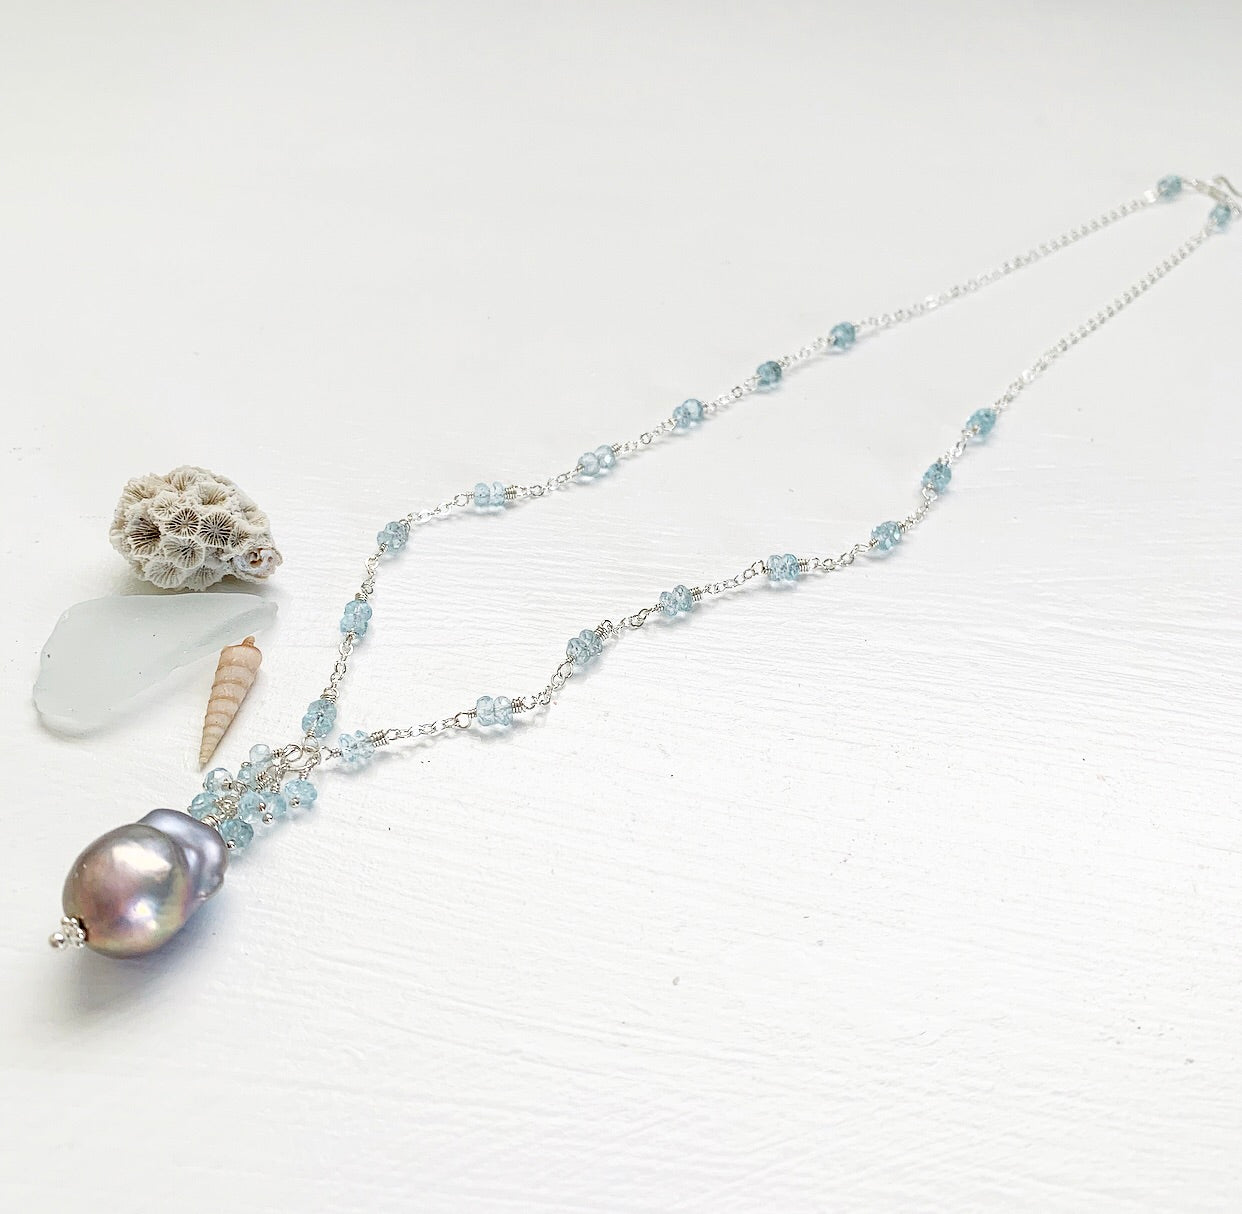 786-Gemstone & Pearl Necklace